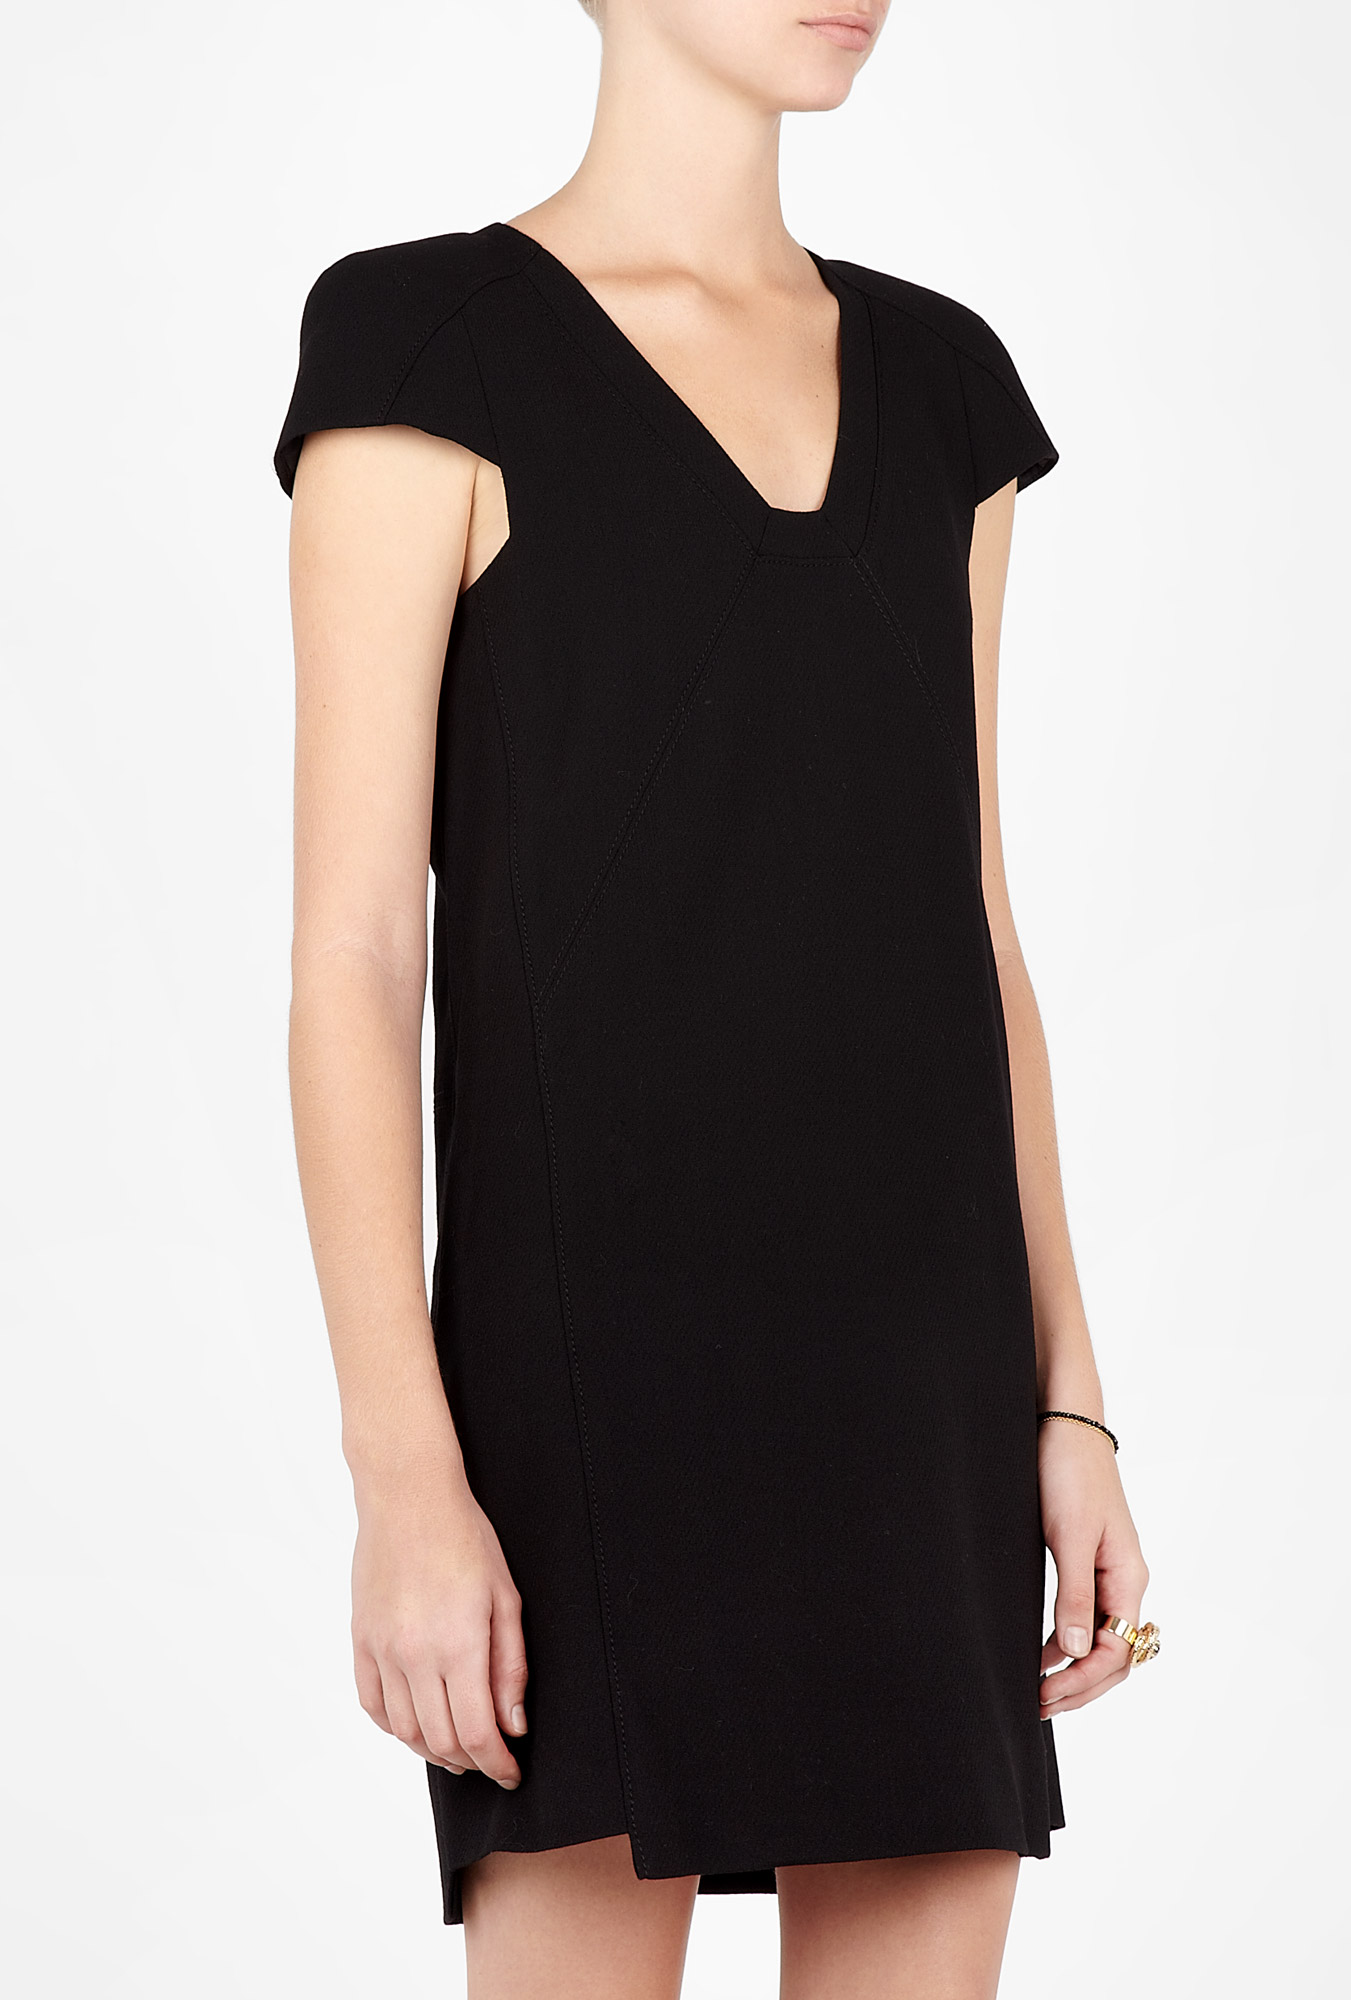 Crepe back satin shift dress with cold should sleeves and draped ruffle YONYWA Women's Sexy Ruffle Short Sleeve Mini Dress Crewneck Crepe Shift Dress. by YONYWA. $ - $ $ 11 $ 21 98 Prime. FREE Shipping on eligible orders. Some sizes/colors are Prime eligible. out of 5 stars 8.